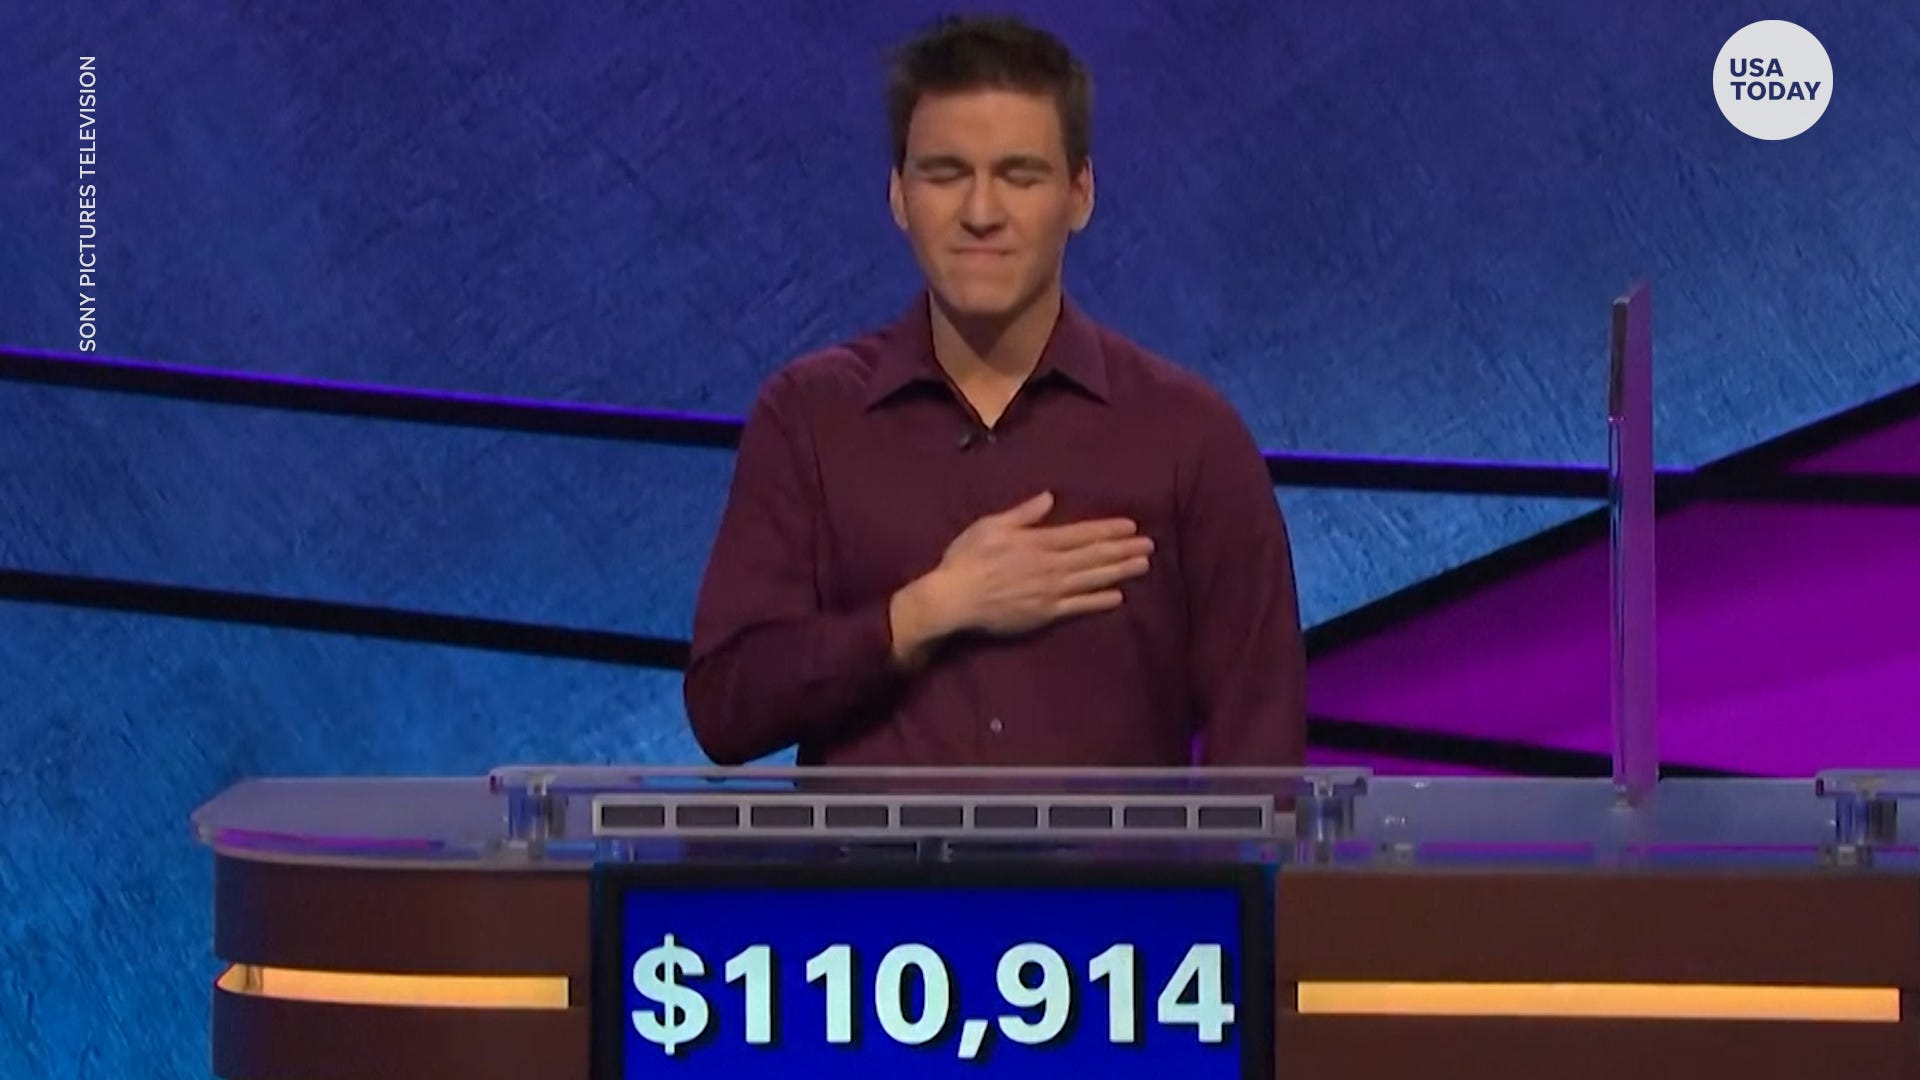 James Holzhauer ends 32-game 'Jeopardy!' winning streak